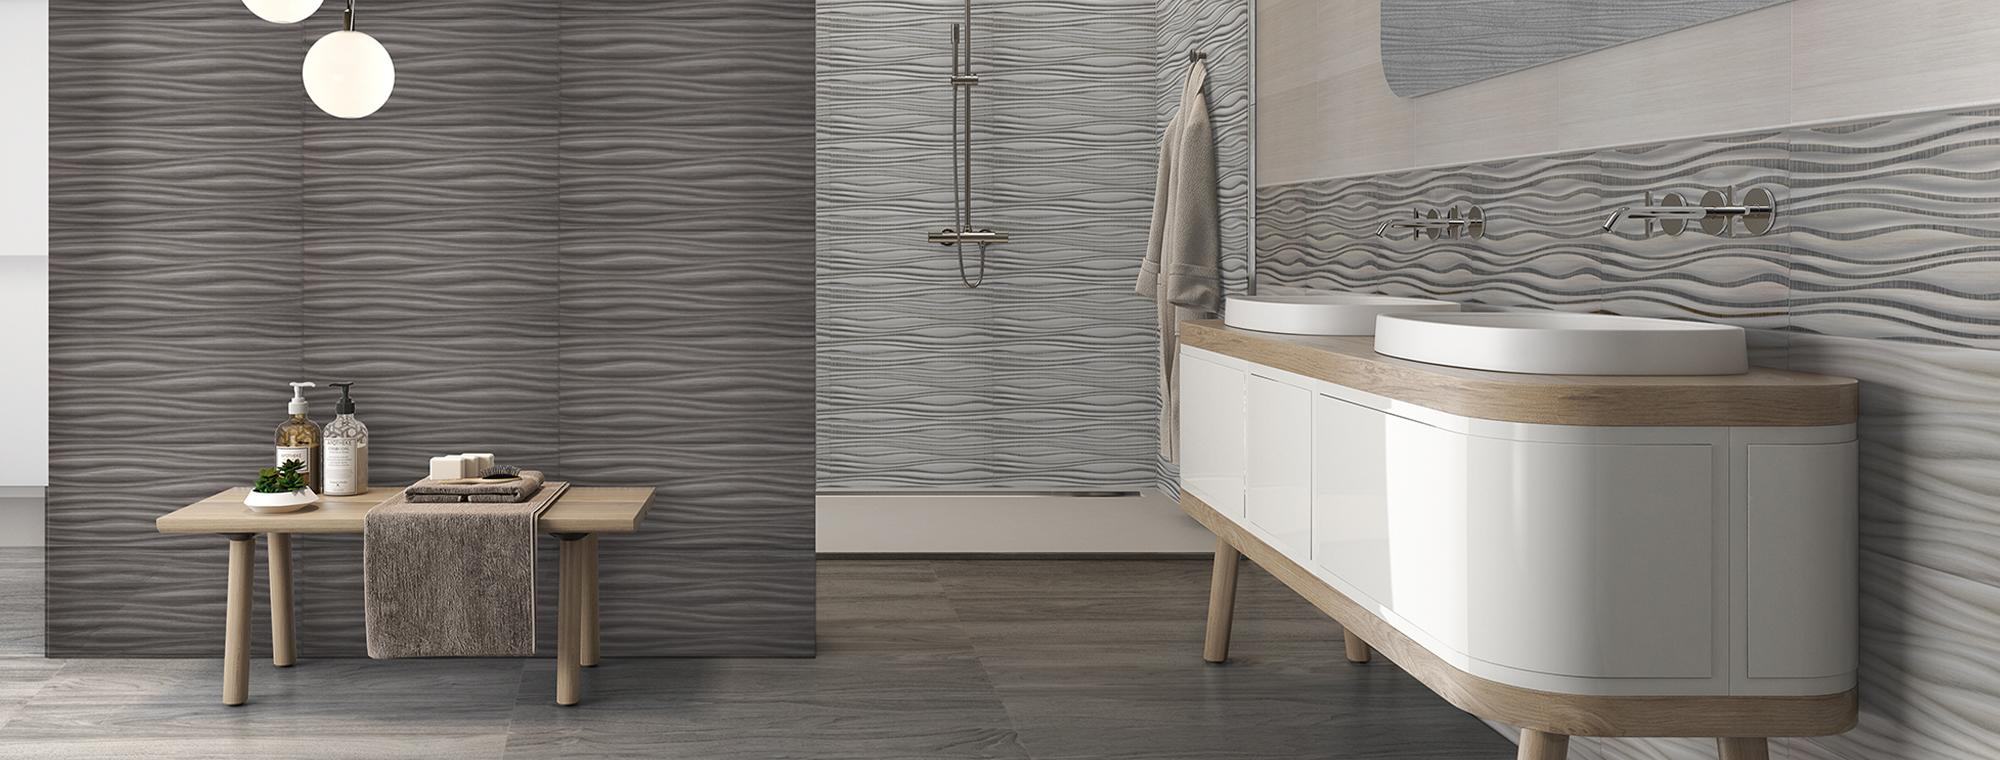 <h2>Discover our extensive range of Tiles, <br>Bathroom Ware and Wood Flooring</h2><p>From Classic to Modern Styles</p> SHOWROOM OPEN FOR WALK INS, OPENING HOURS : MONDAY - SATURDAY 10AM - 5PM